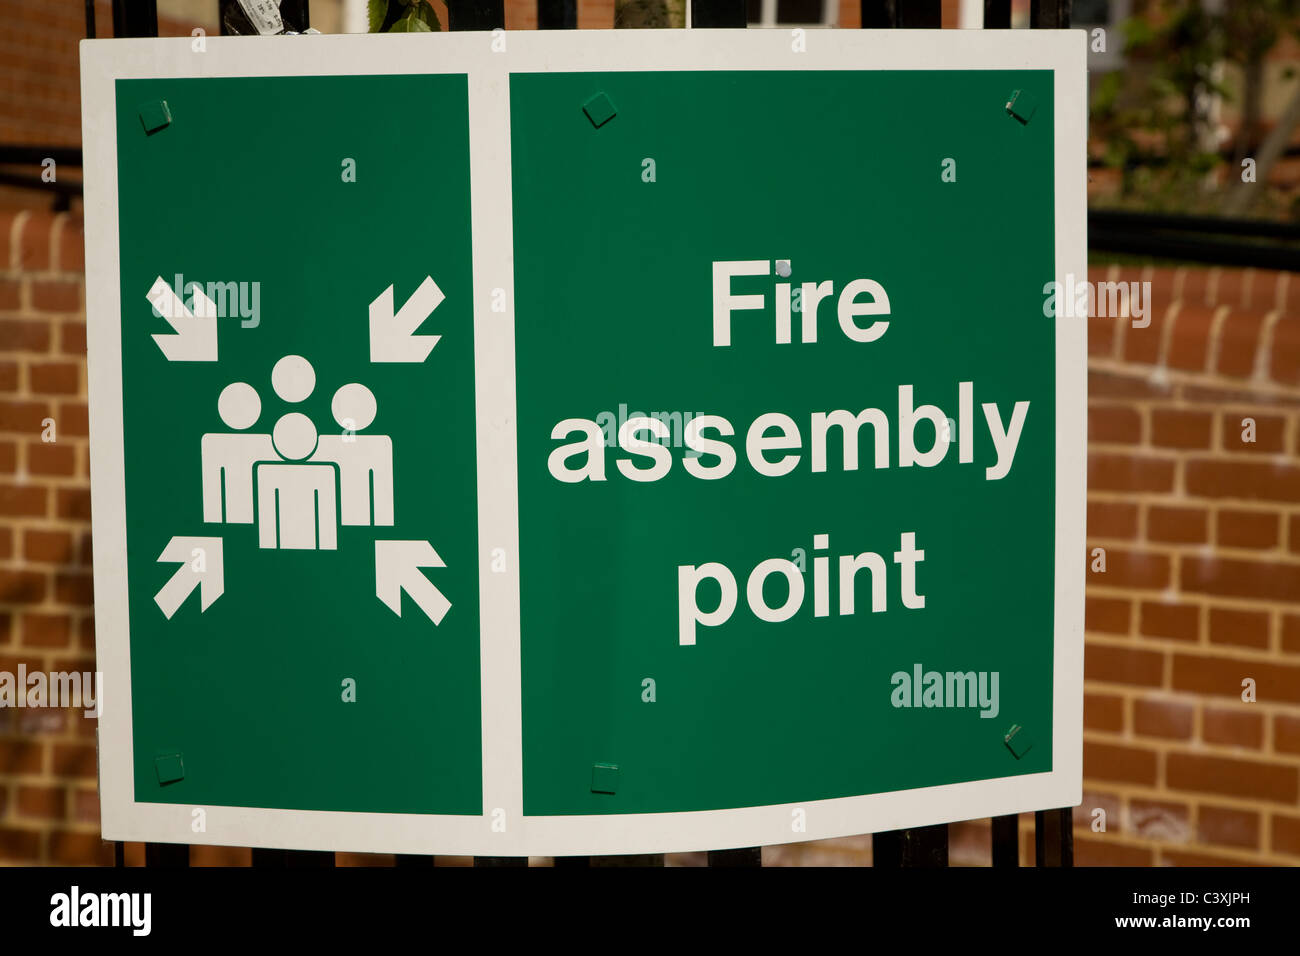 Fire Assembly Point green sign graphic - Stock Image